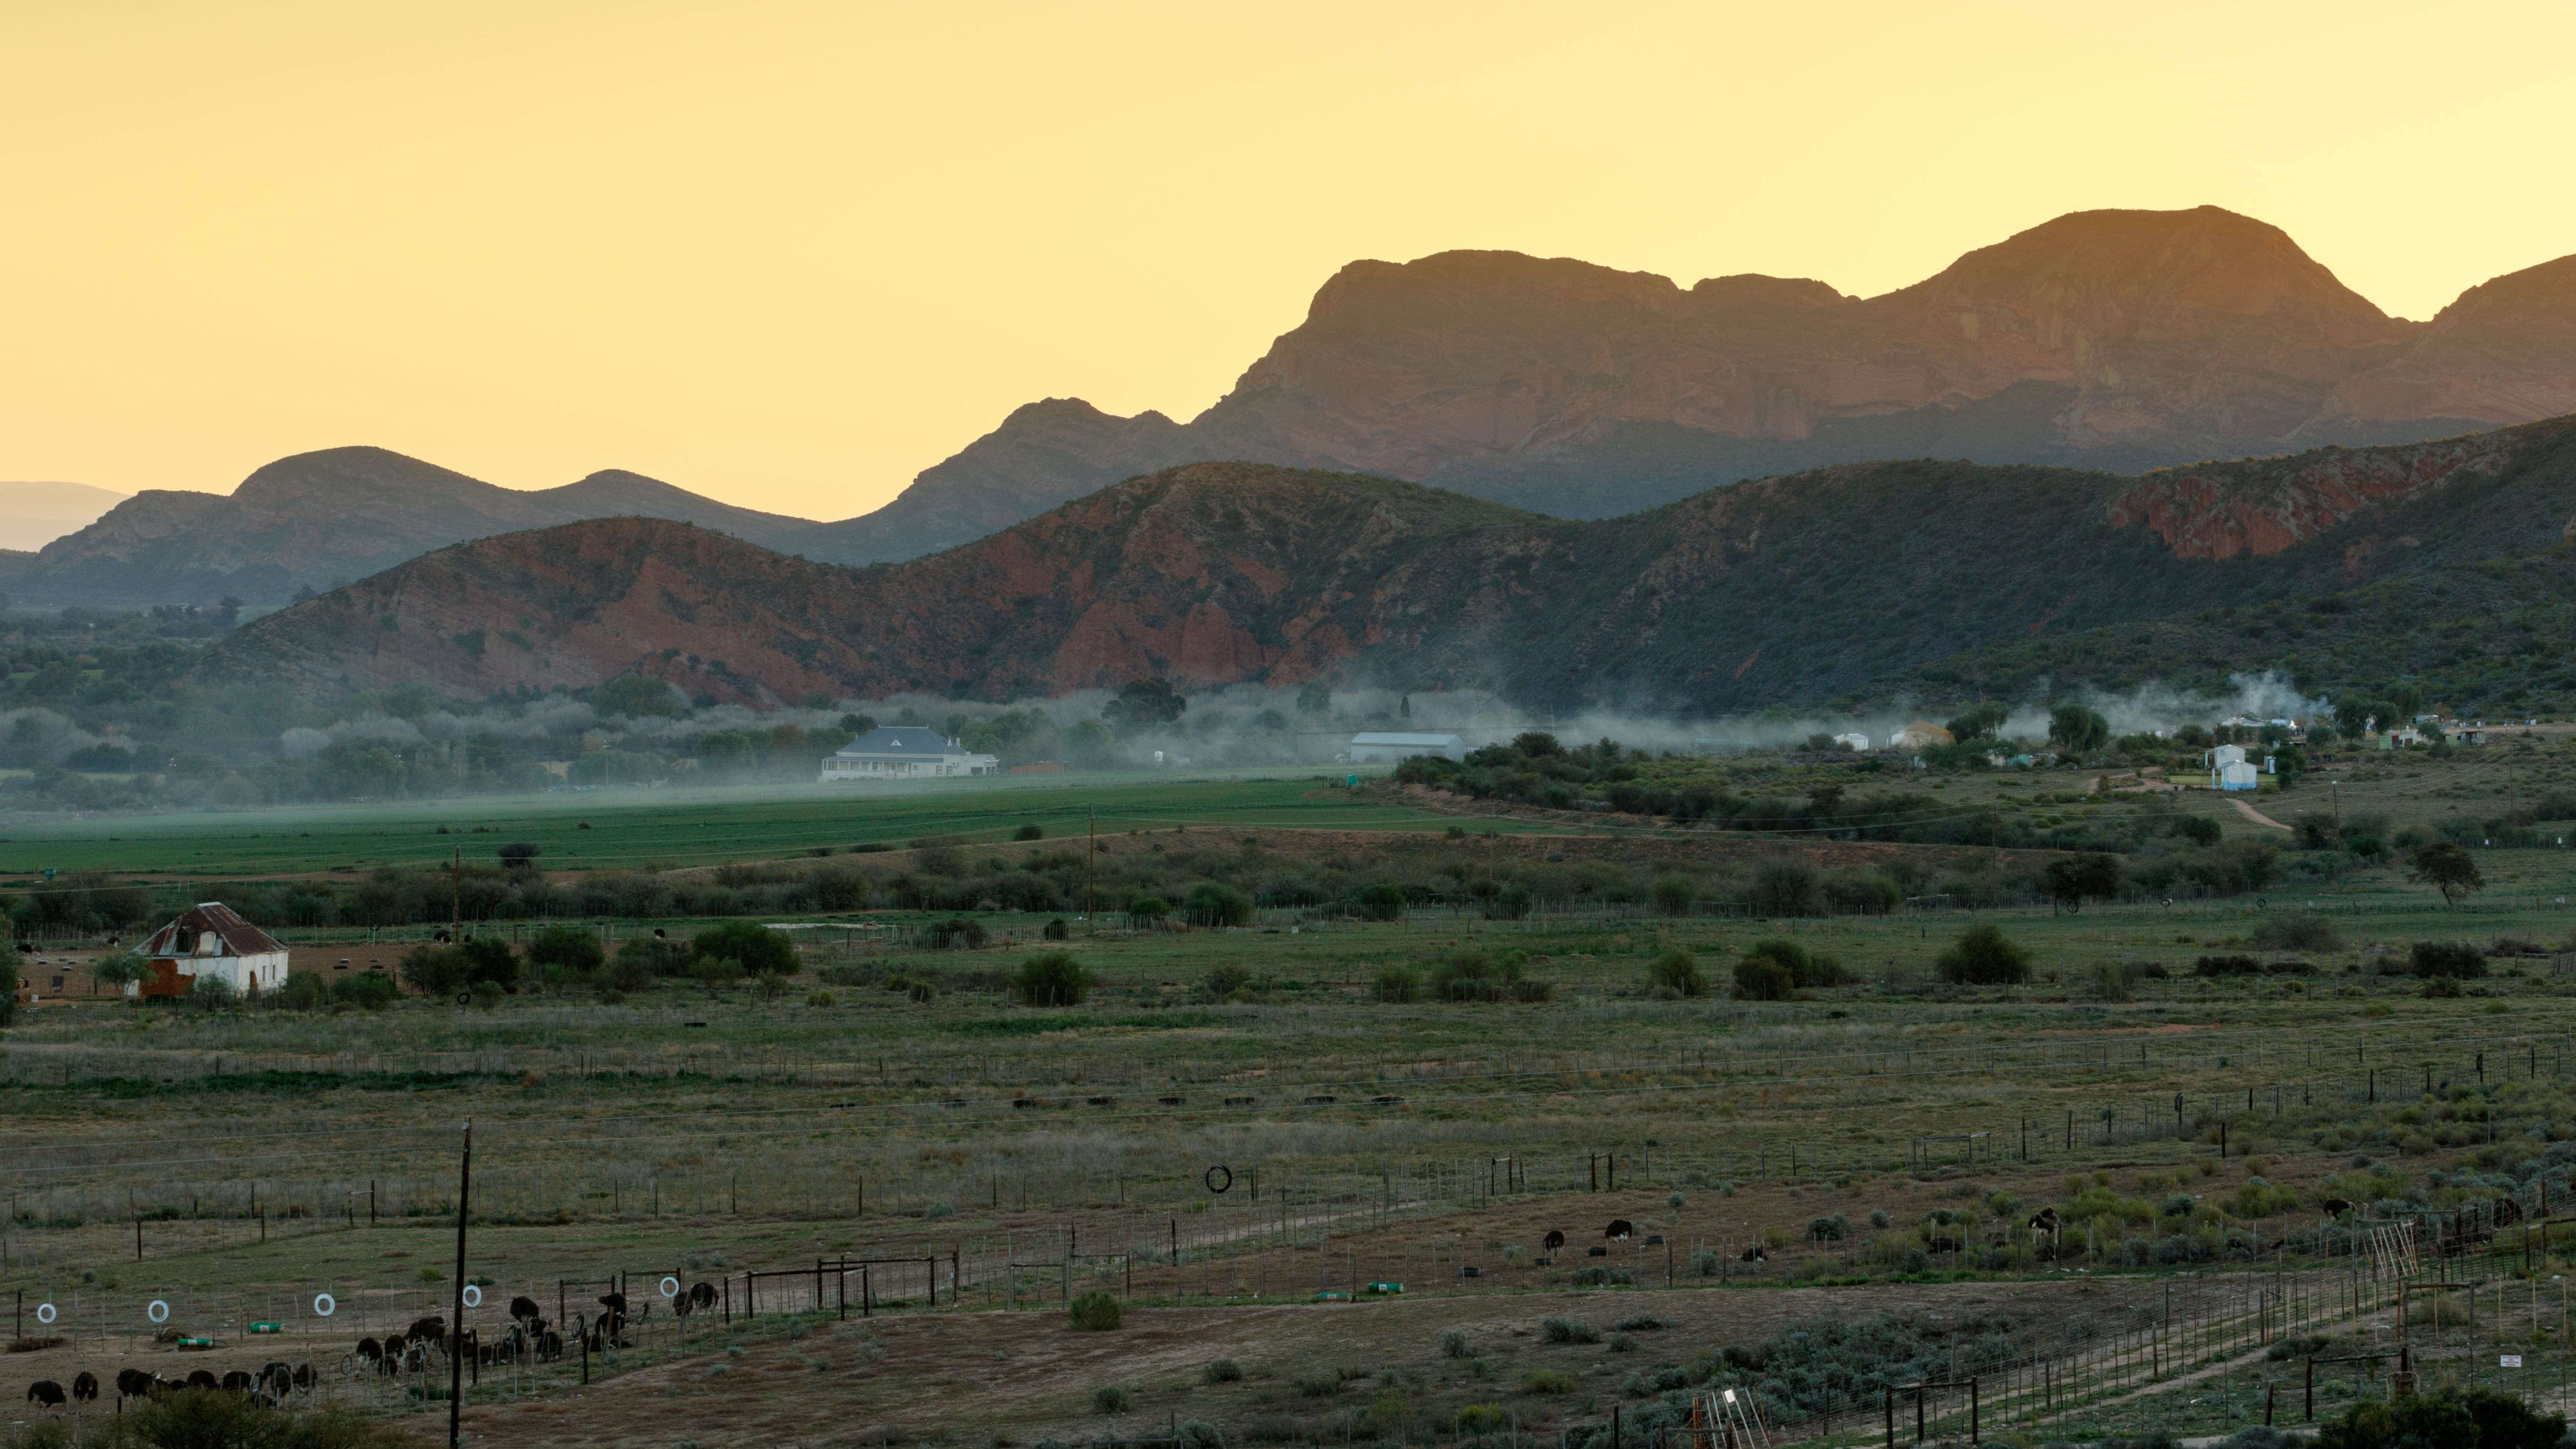 Mist over Middle Plaas - De Rust Mist over Middle Plaas - De Rust is a small village at the gateway to the Klein Karoo, South Africa.